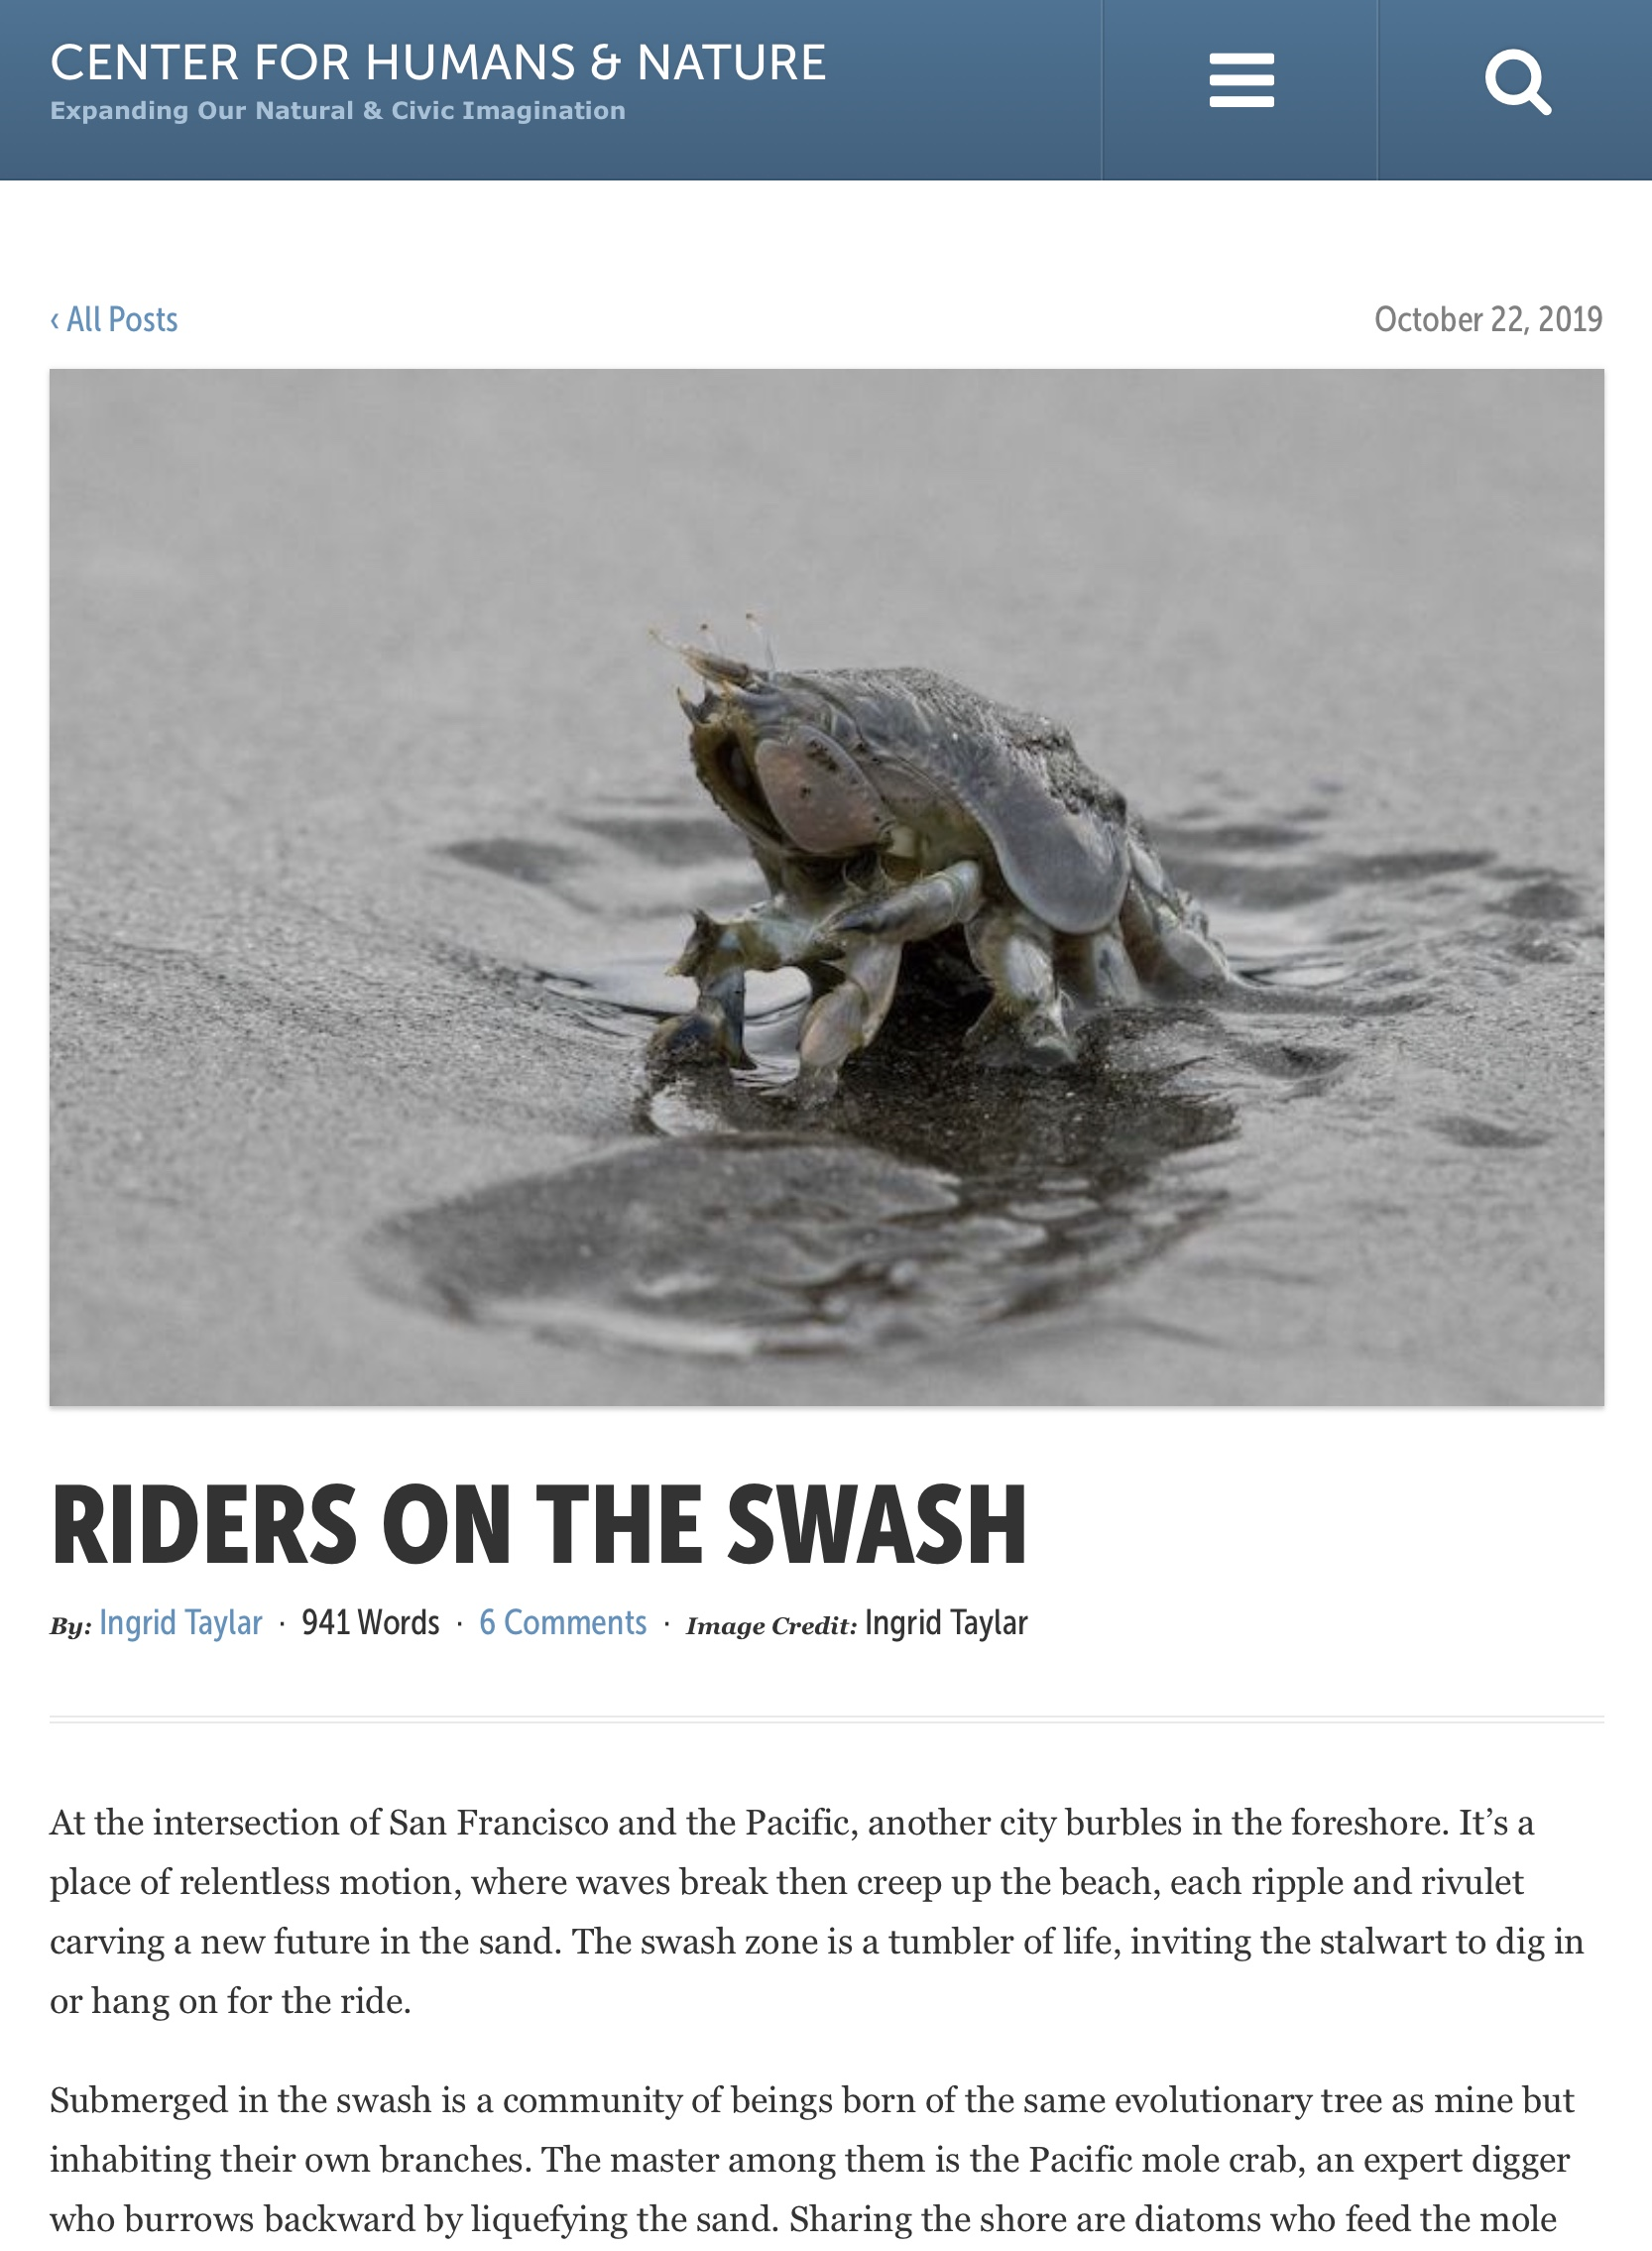 Riders on the Swash